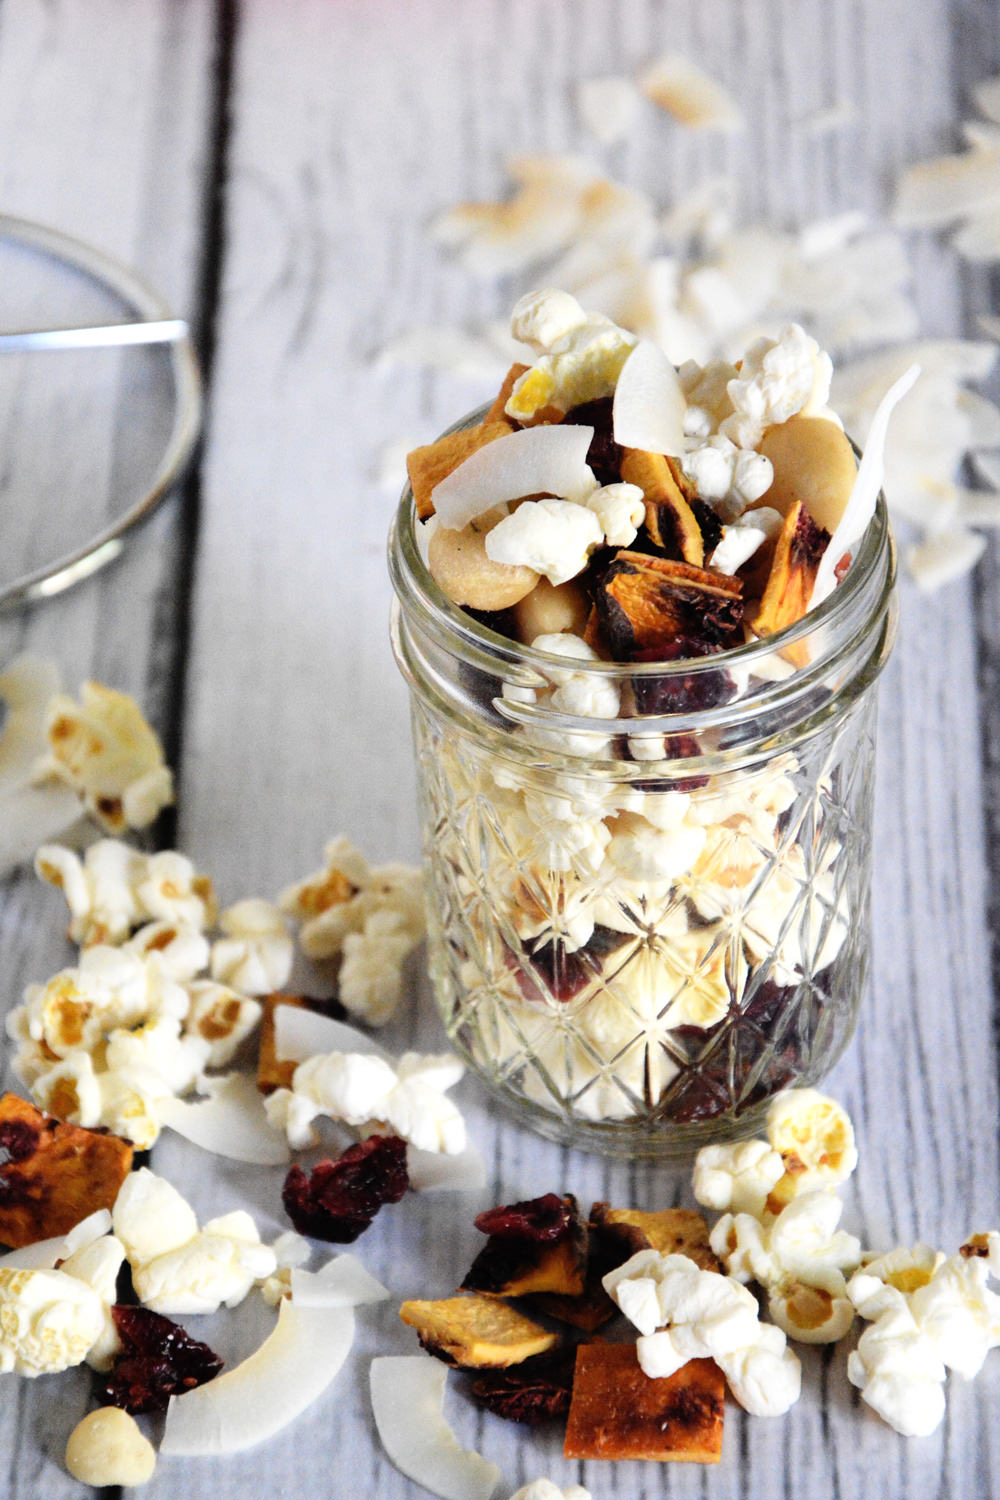 Peach Colada Popcorn Snack Mix is a sweet and salty snack that takes no time to throw together and will satisfy any snack attack!